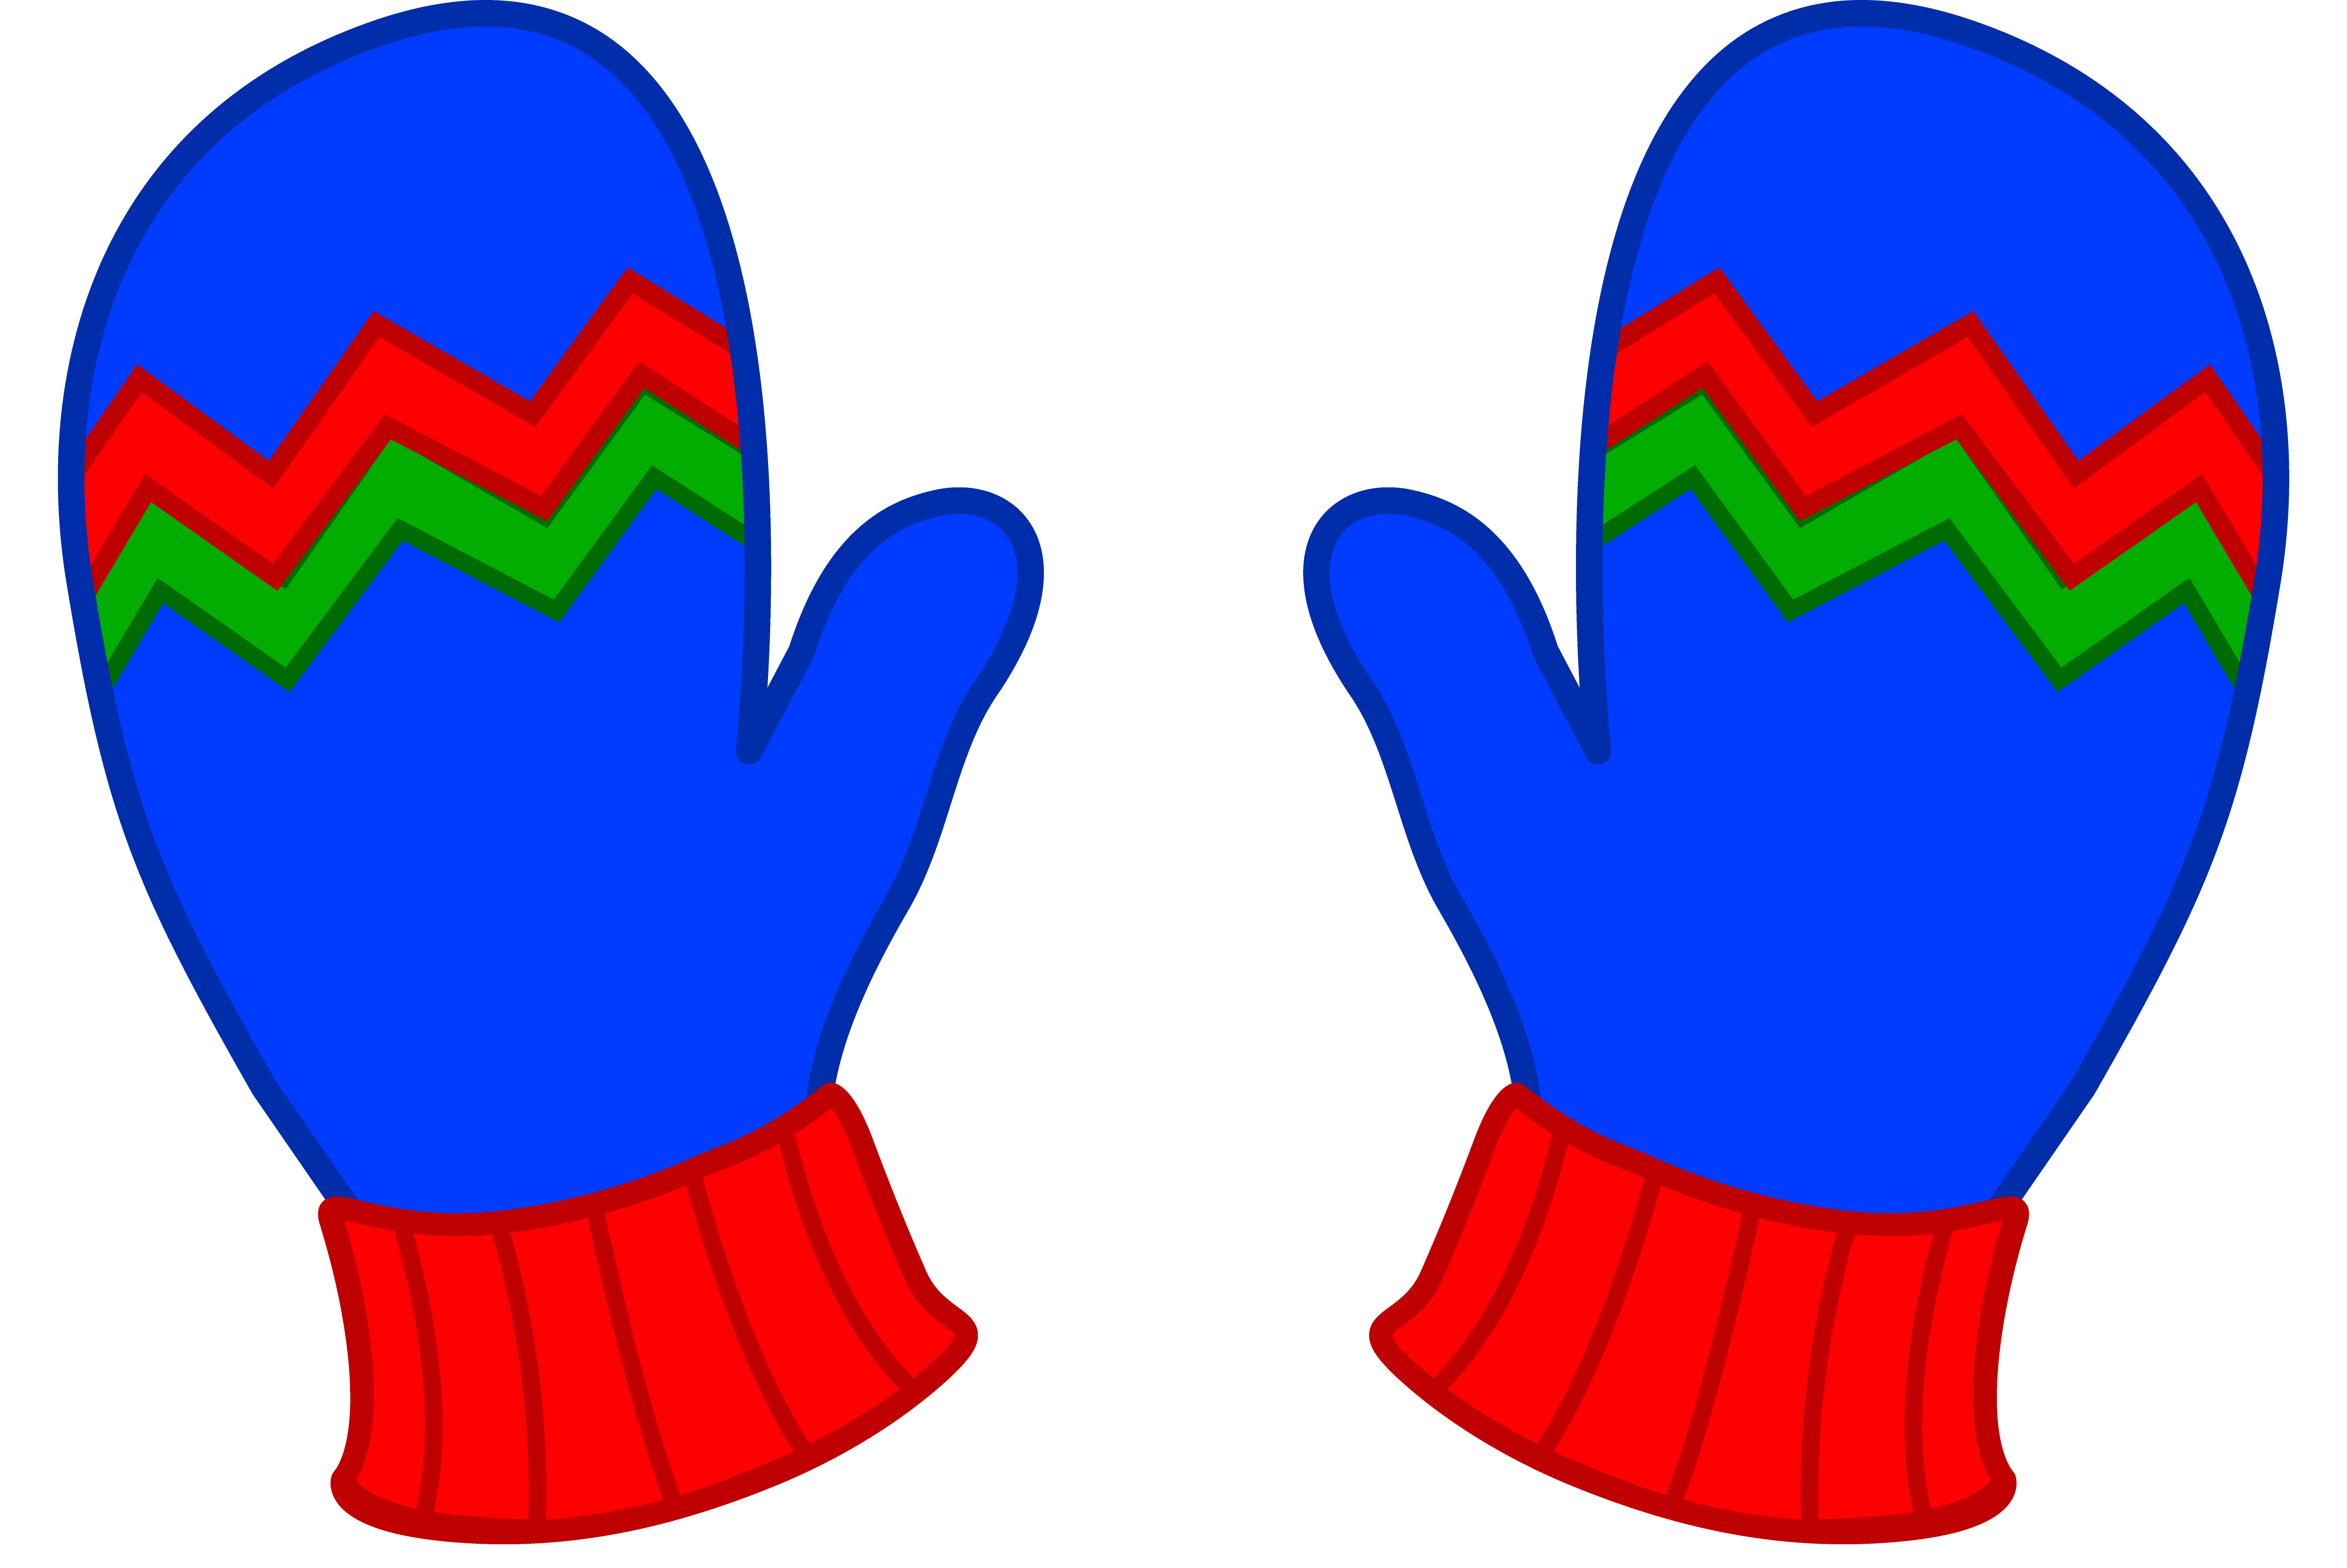 Free mitten cliparts download. Gloves clipart banner free download